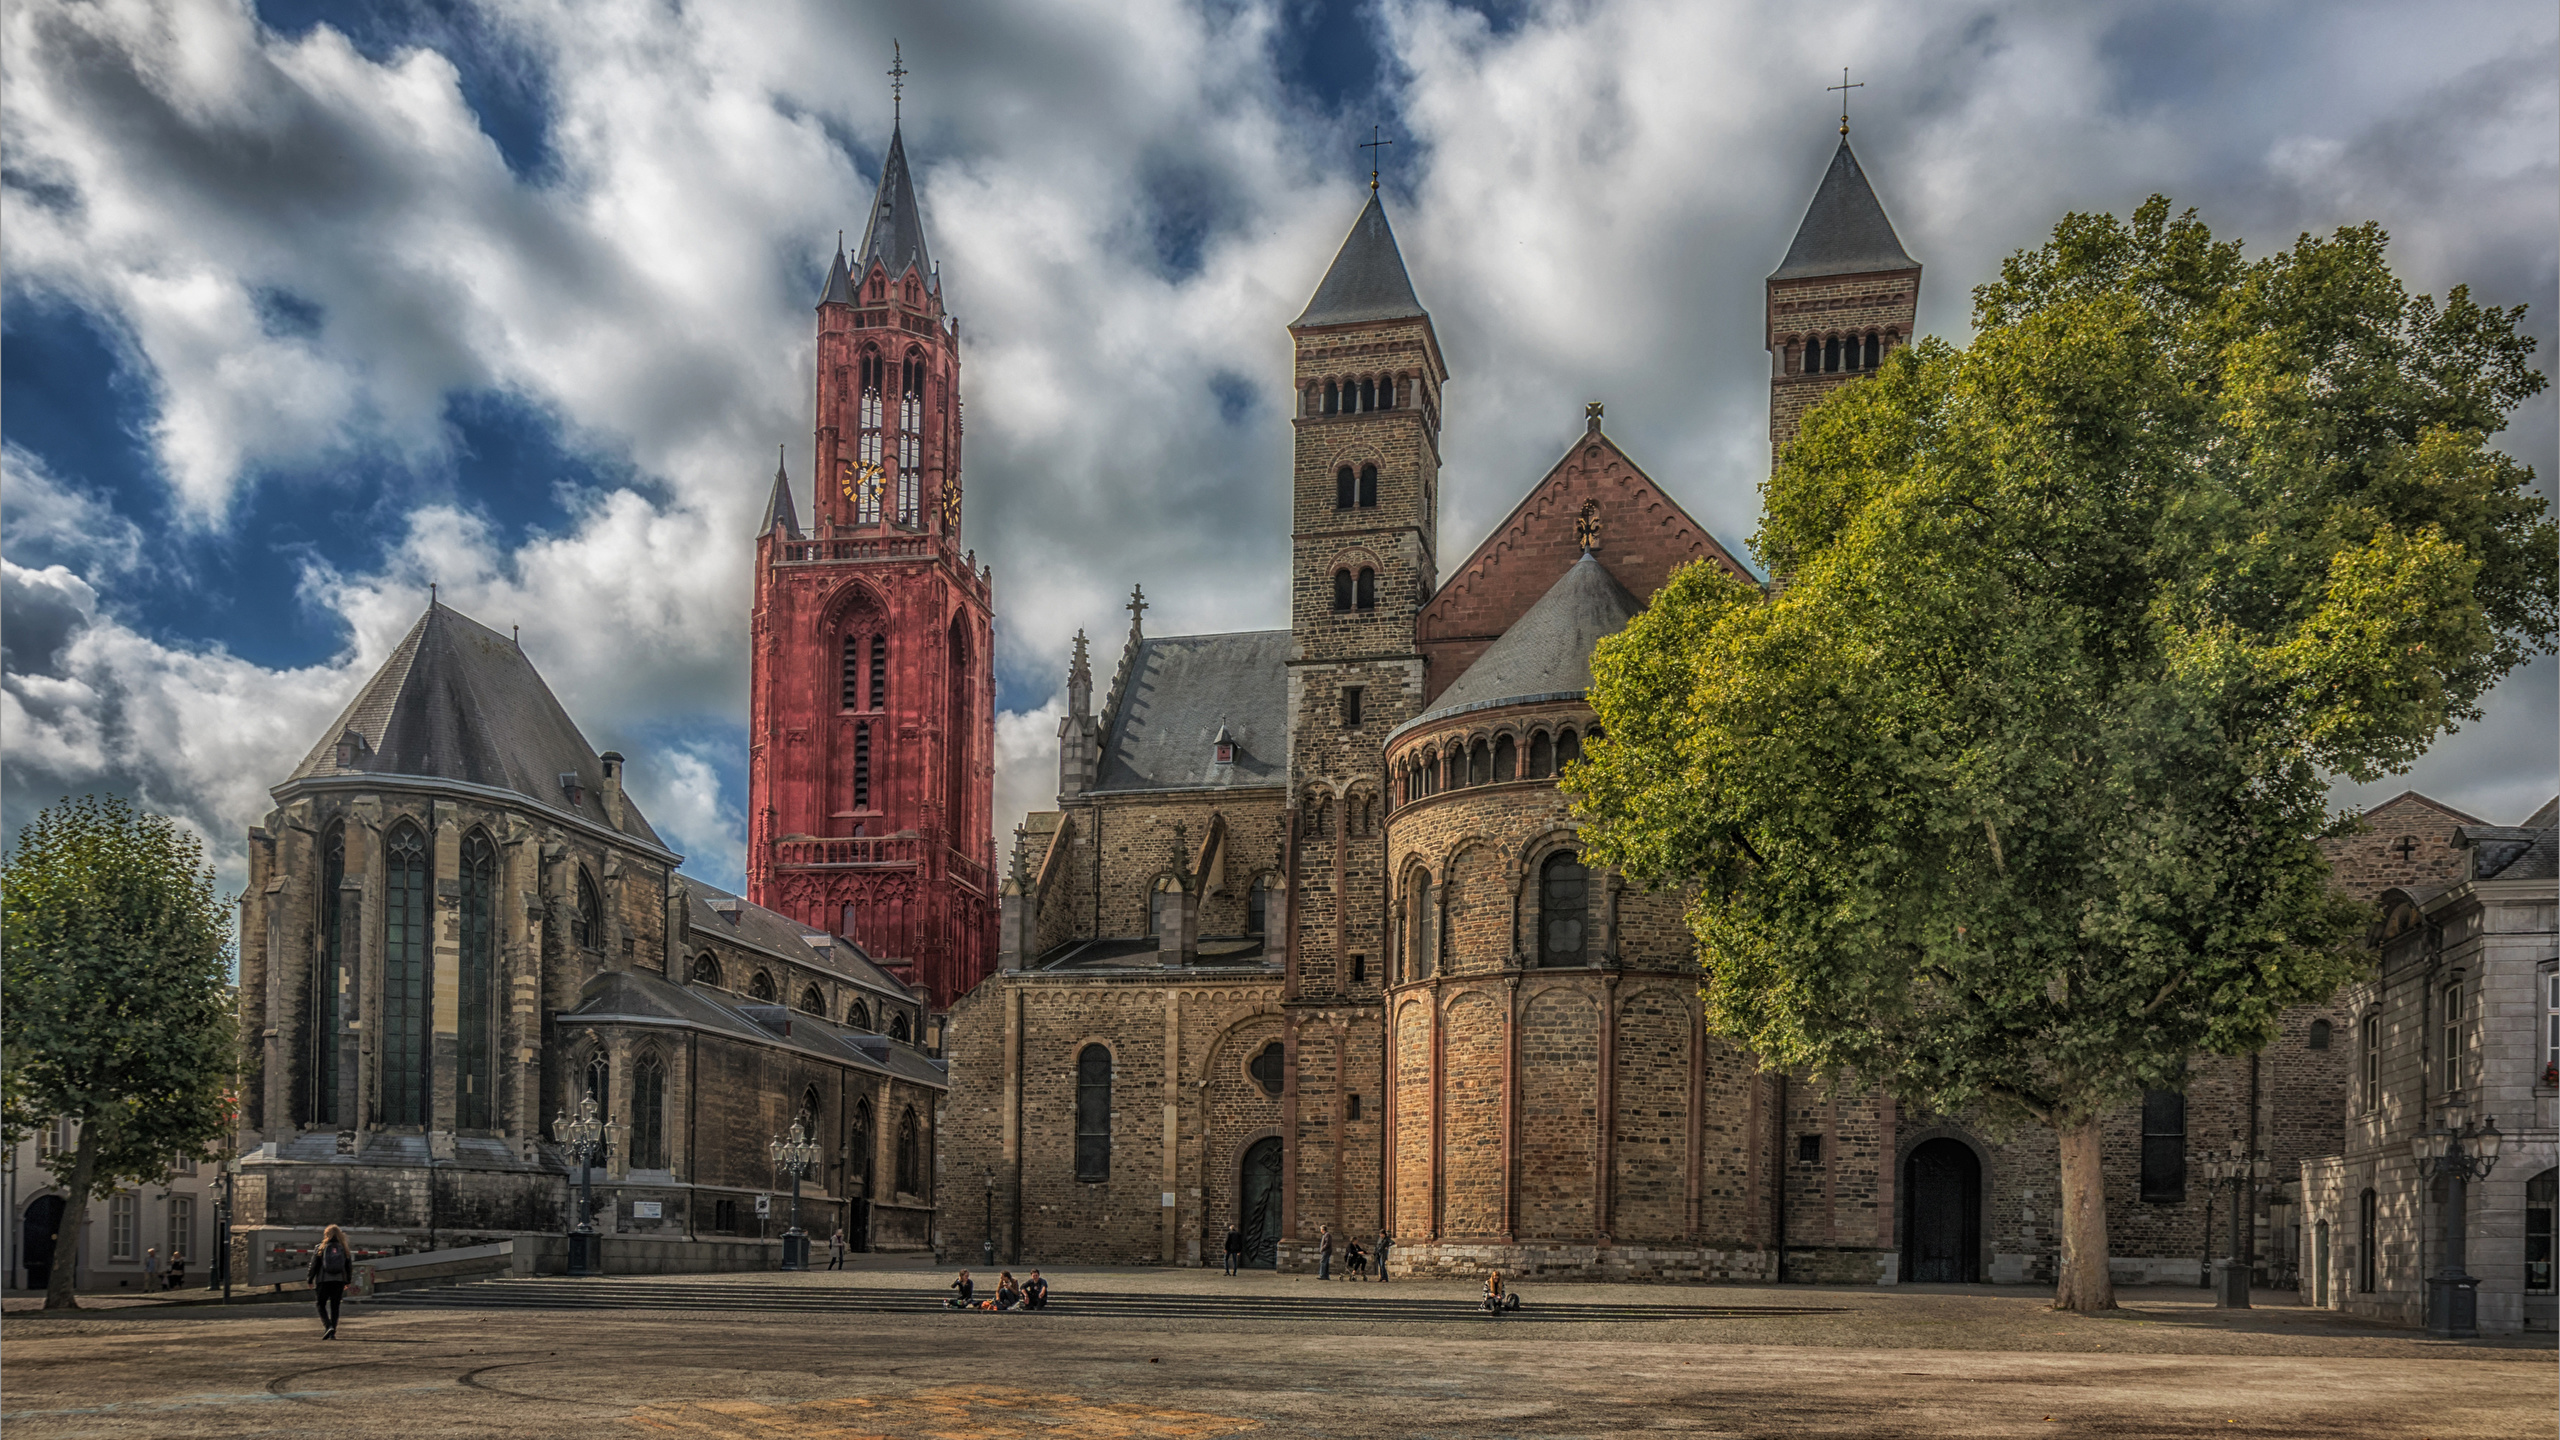 Image Church Netherlands Maastricht HDR Temples Cities 2560x1440 2560x1440